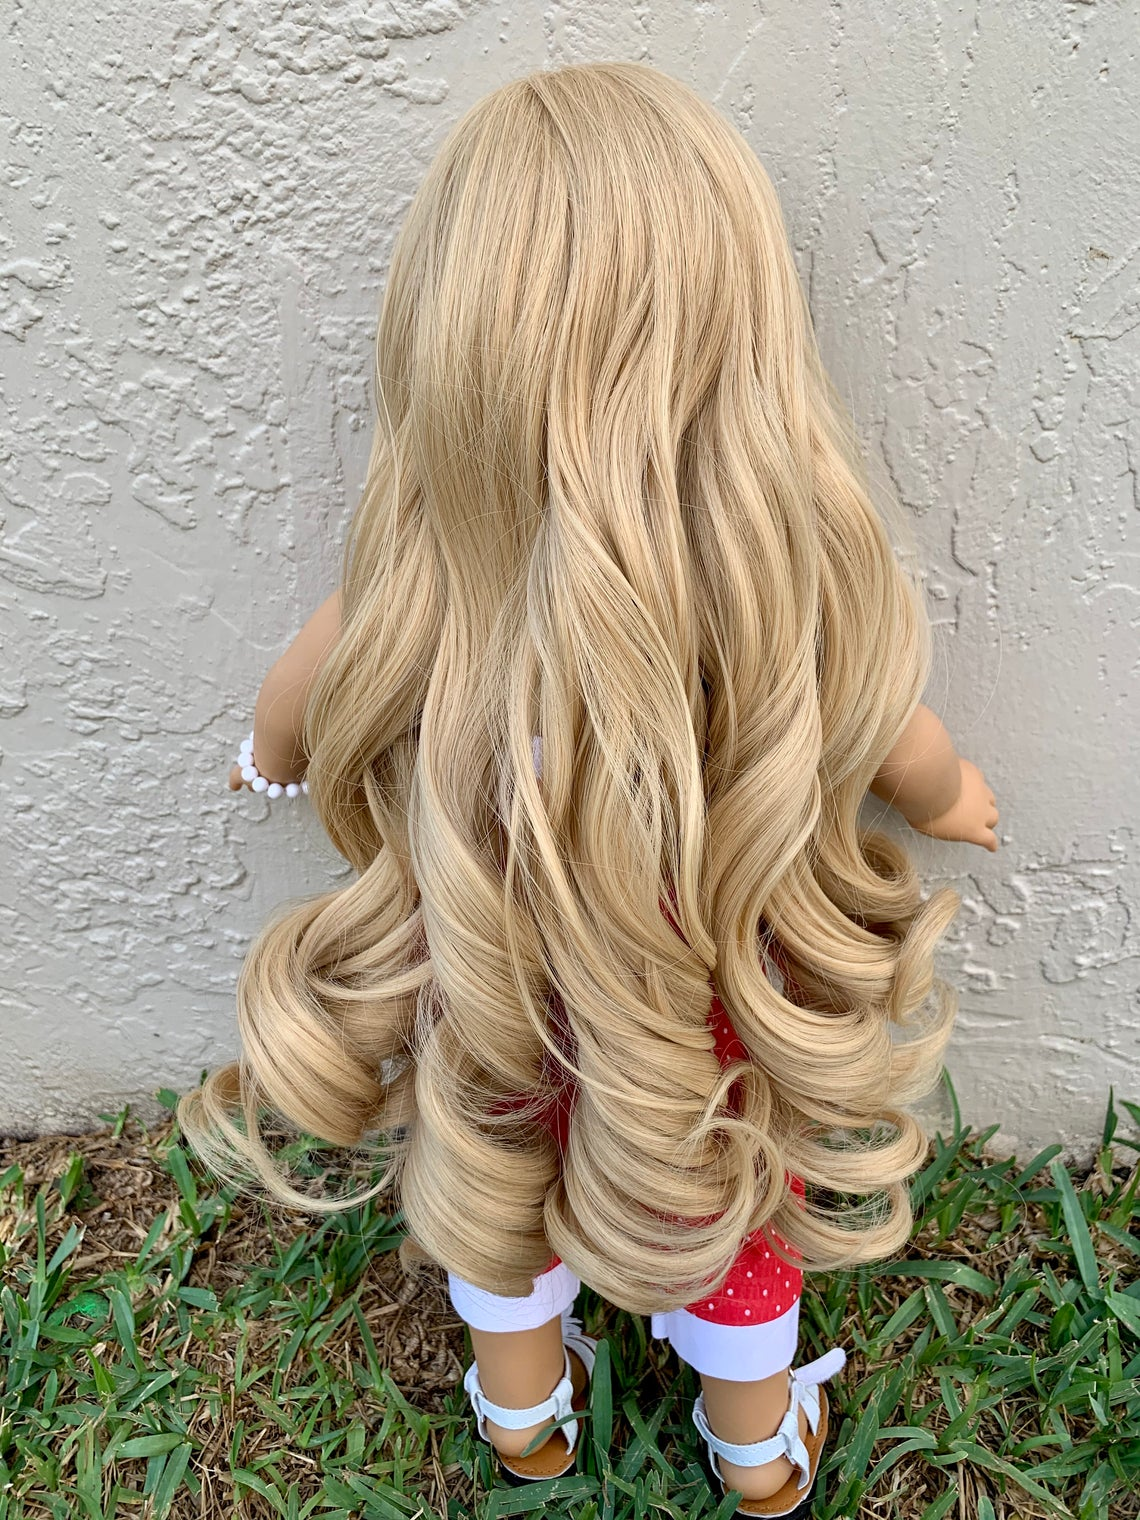 Zazou Dolls Exclusive Princess Honey WIG for 18 Inch dolls such as Our Generation, Journey Girls and American Girl